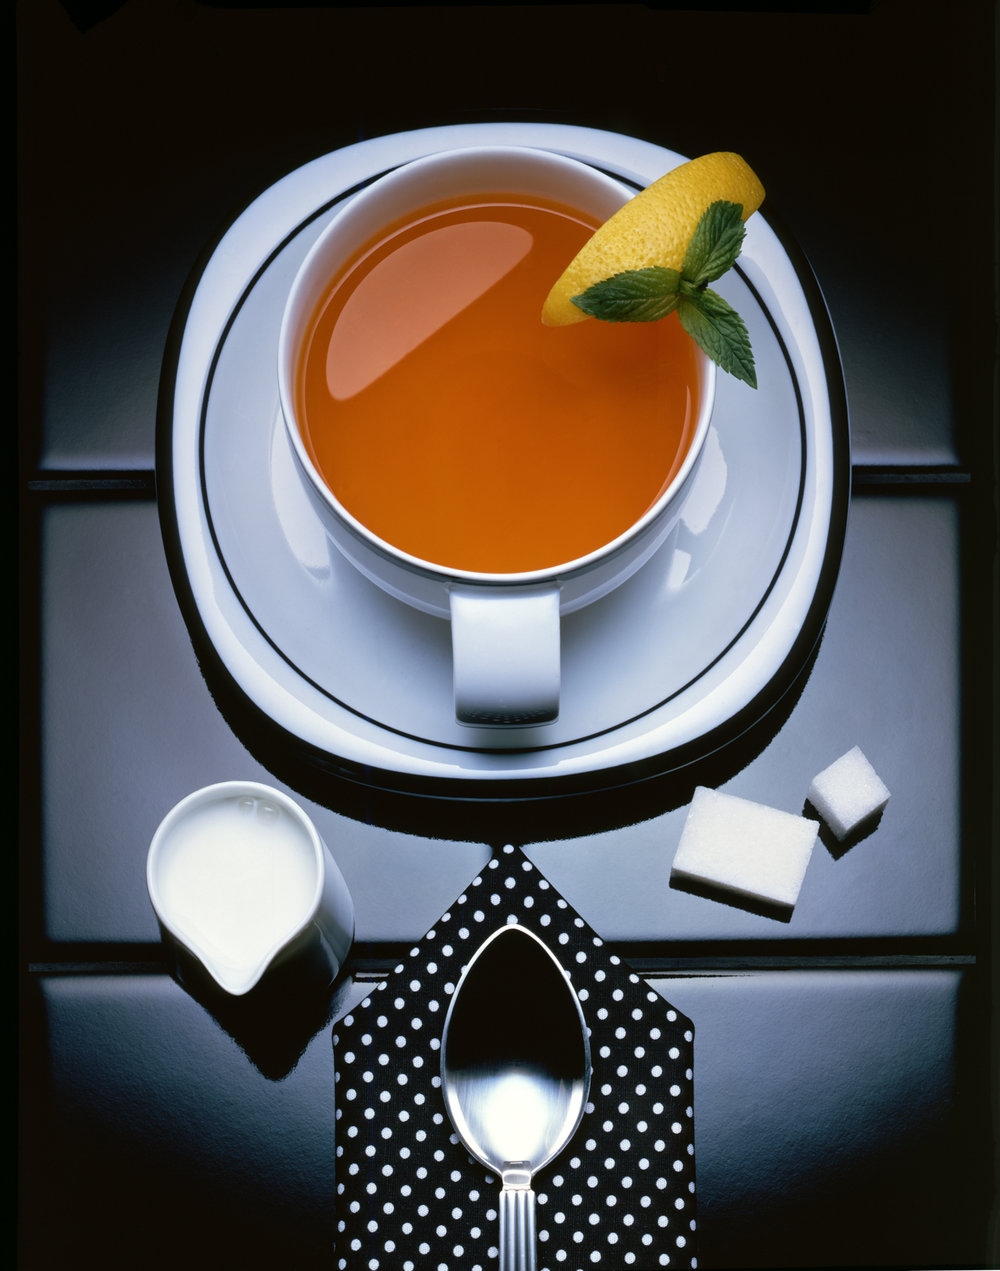 Orange Pekoe  - 1983